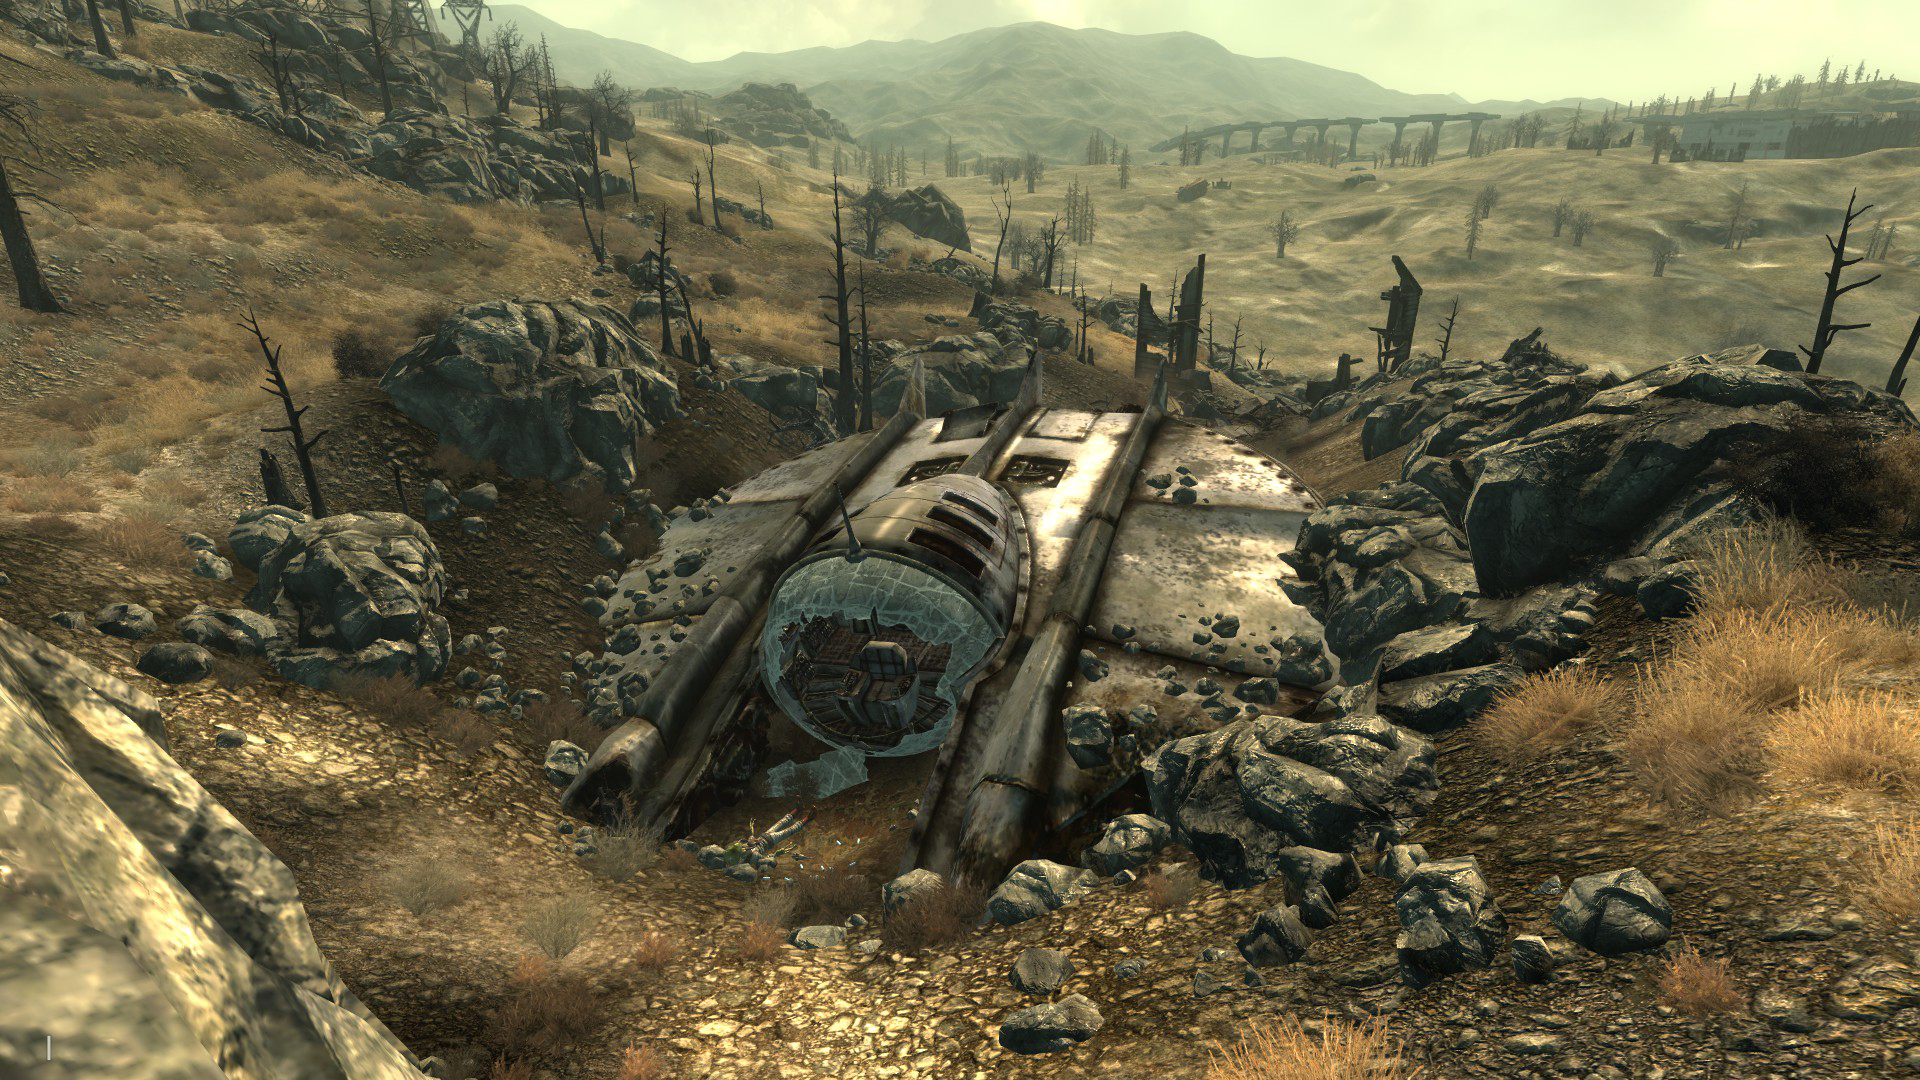 fallout 3 alien blaster location map with Alien Crash Site on Watch as well Alien crash site together with Watch besides Fallout 4 Map Fallout 4 Guide How To Get The Alien Blaster Pistol Map Location And Screenshot Revealed Fallout 4 Diamond City Market Map likewise New Vegas Map.